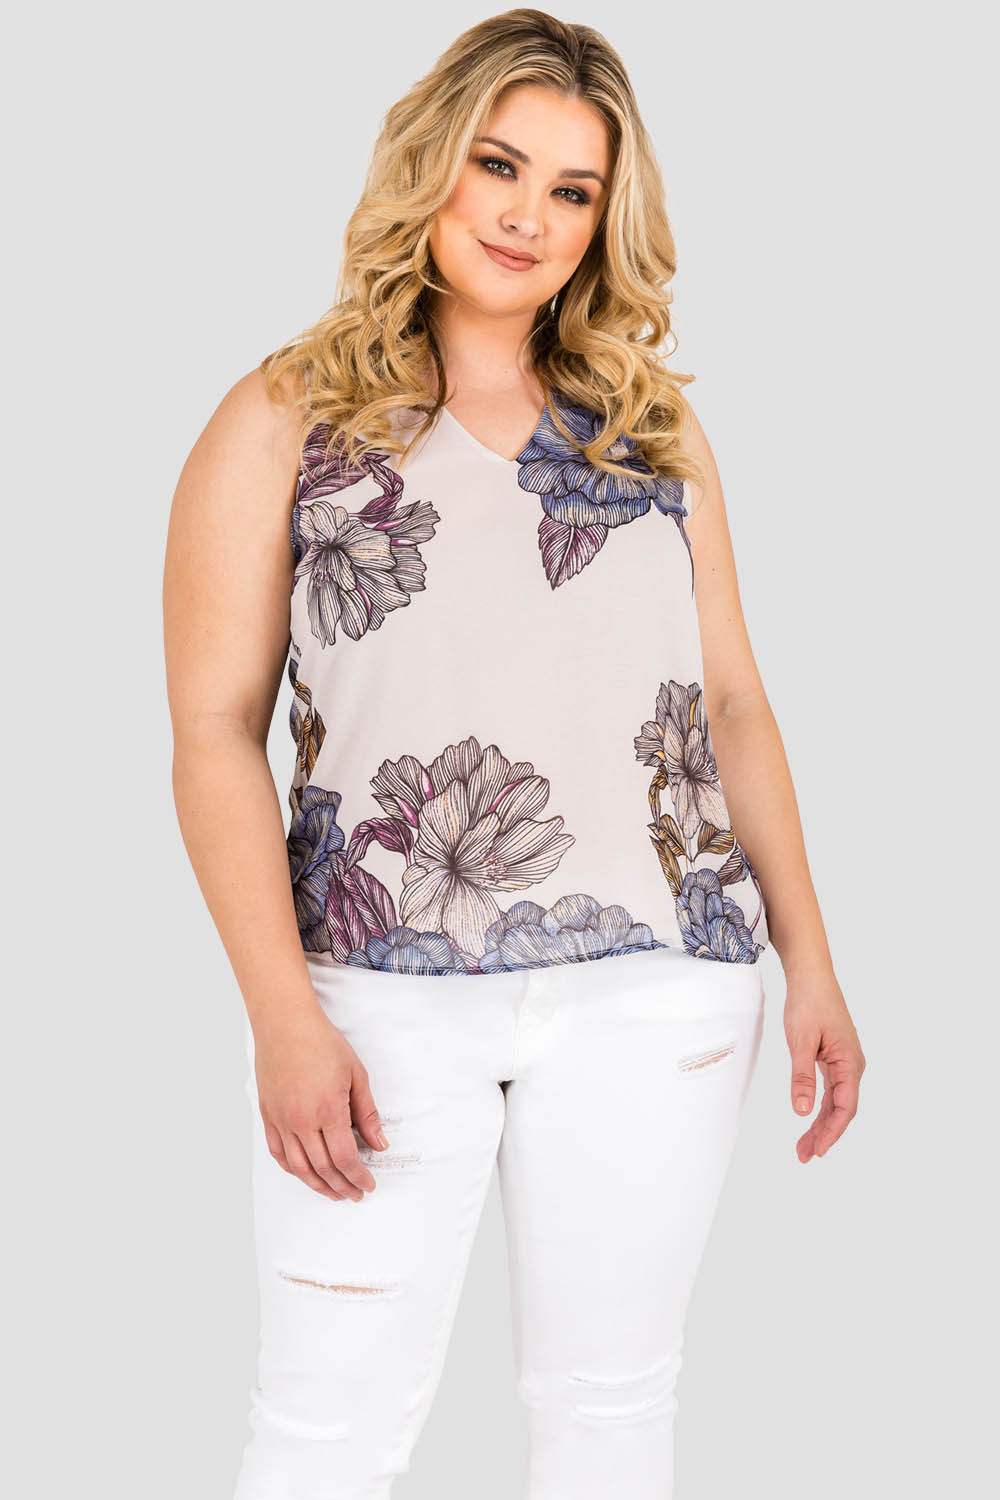 Standards & Practices Curvy Women's Plus Size Gray All Over Floral Print Chiffon Sleeveless Tie V-Back Top